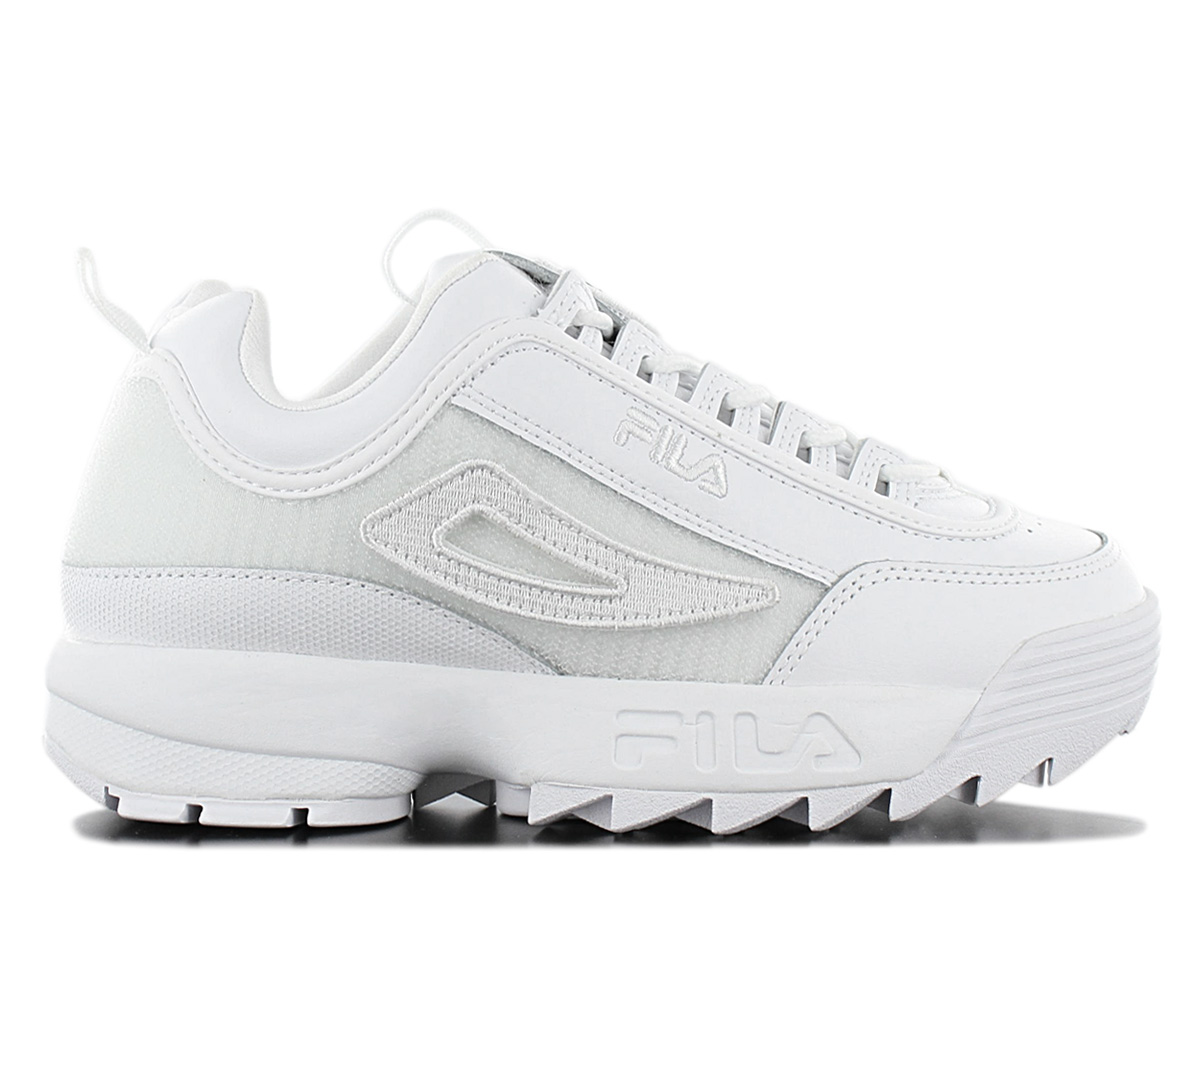 Details about Fila Disruptor Low II Patches Women's Sneaker 5FM00538.100 White Fashion Shoes